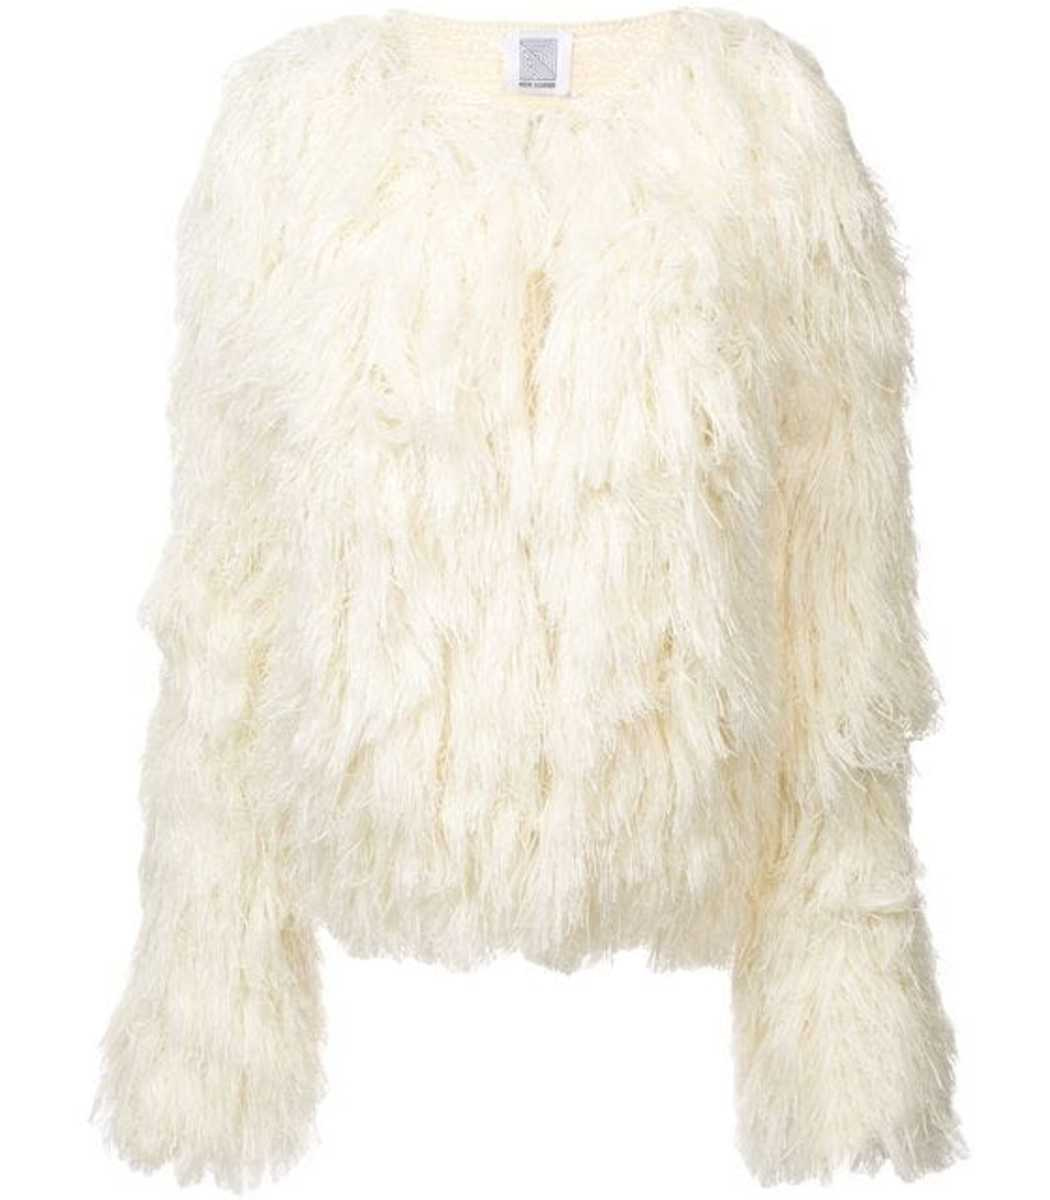 Rosie Assoulin Cream Fringed Knit Jacket